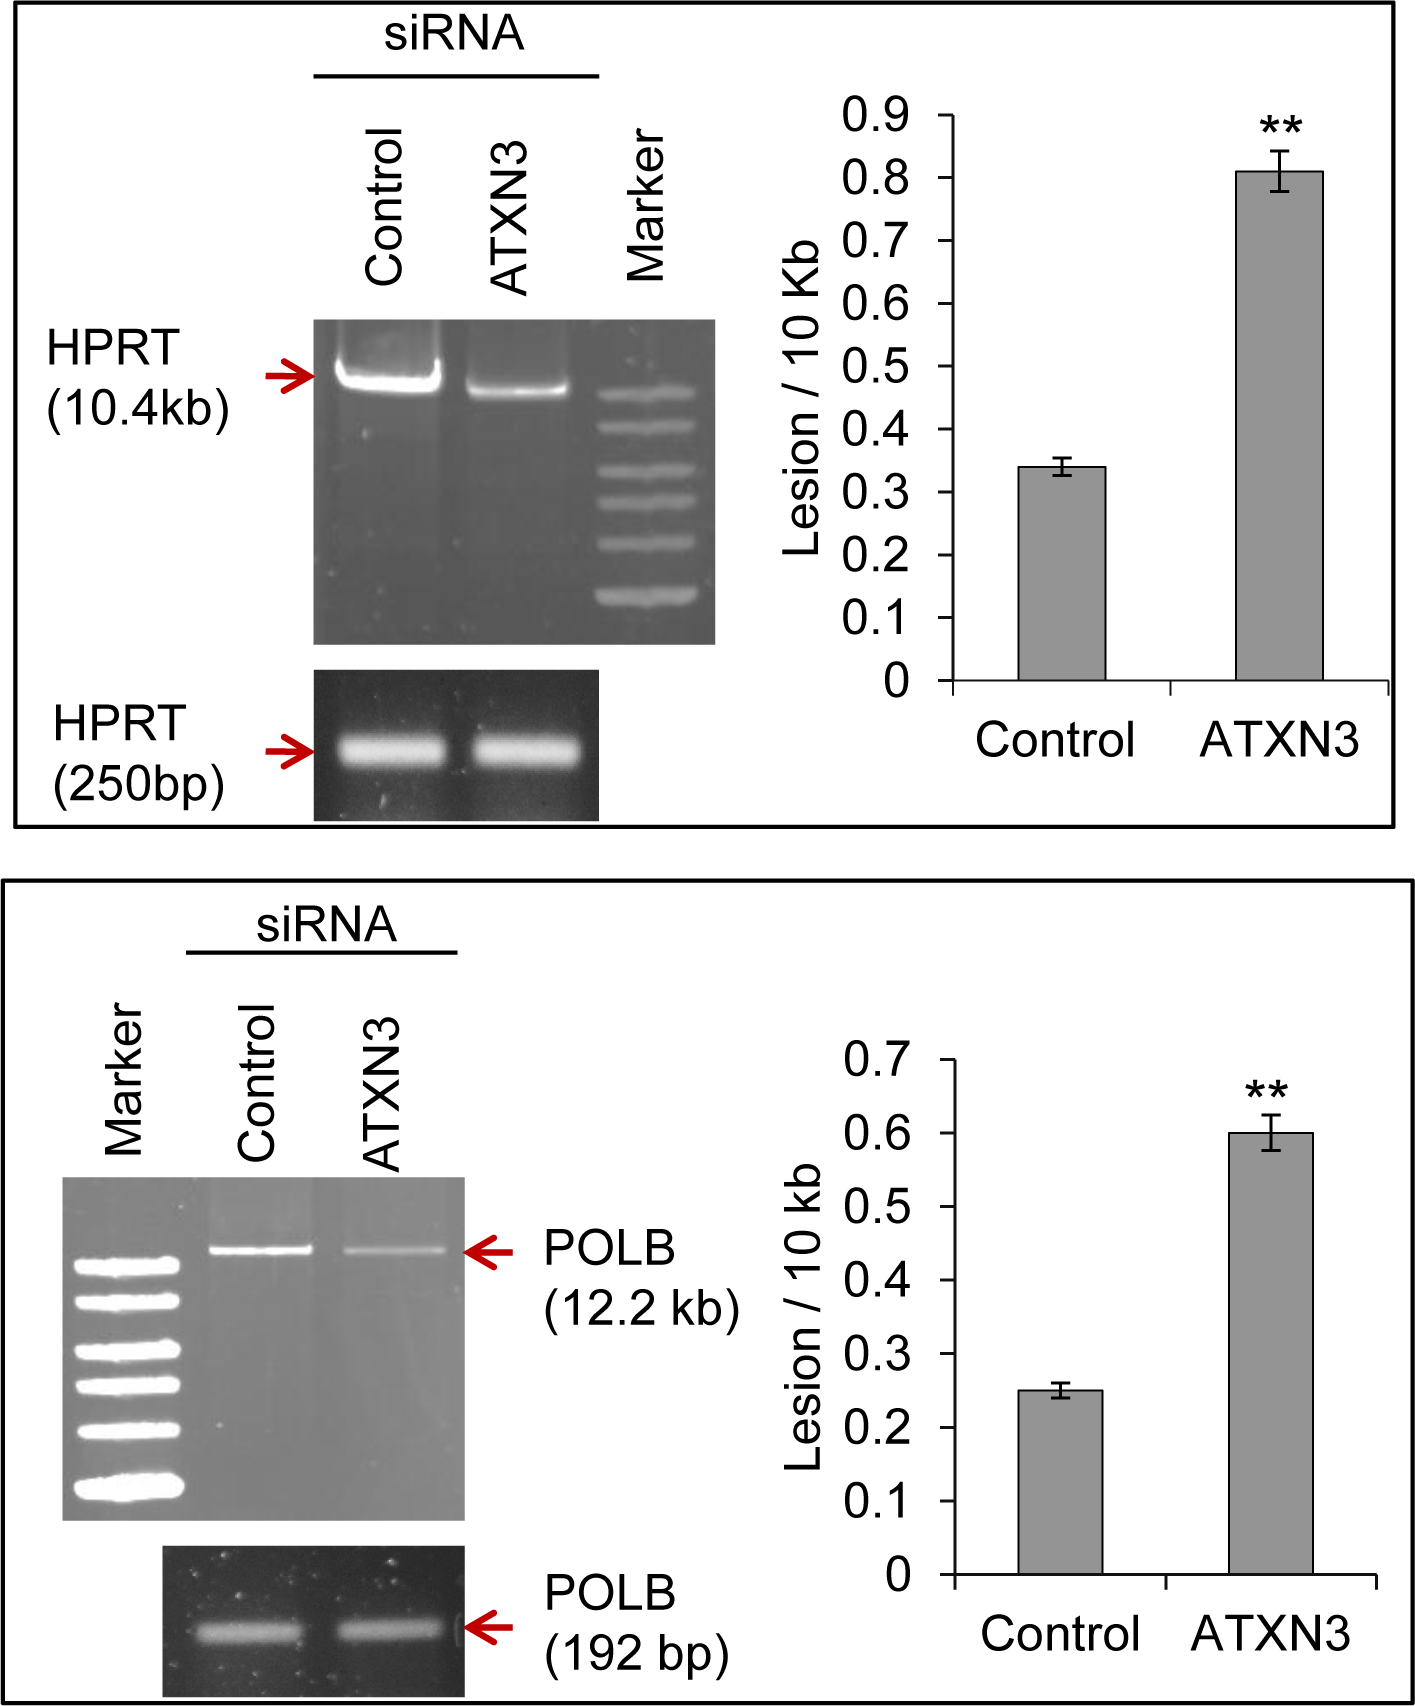 ATXN3 depletion increases DNA strand break levels in the nuclear genome.